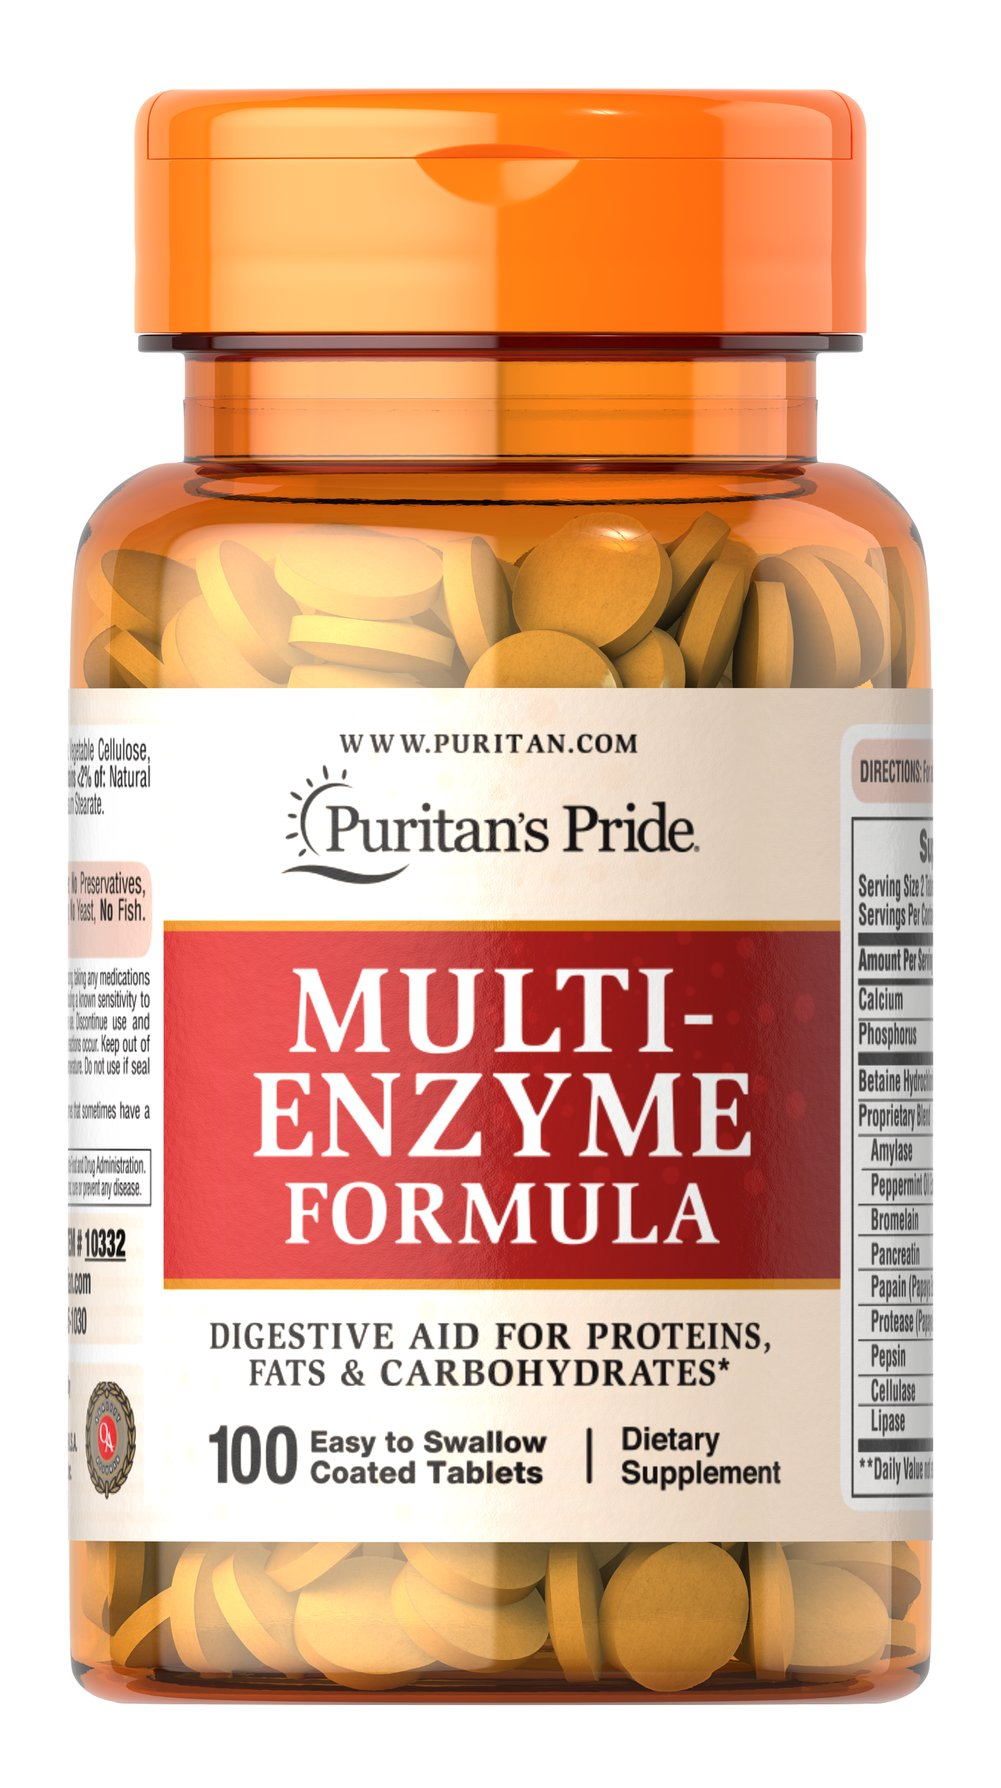 Multi Enzyme <p>Digestive aid for proteins, fats and carbohydrates.** Ingredients include enzymes that can help make nutrients available for the body's energy needs, cell growth and other vital functions.** This product is coated for ease of swallowing.</p>  100 Tablets  $15.99